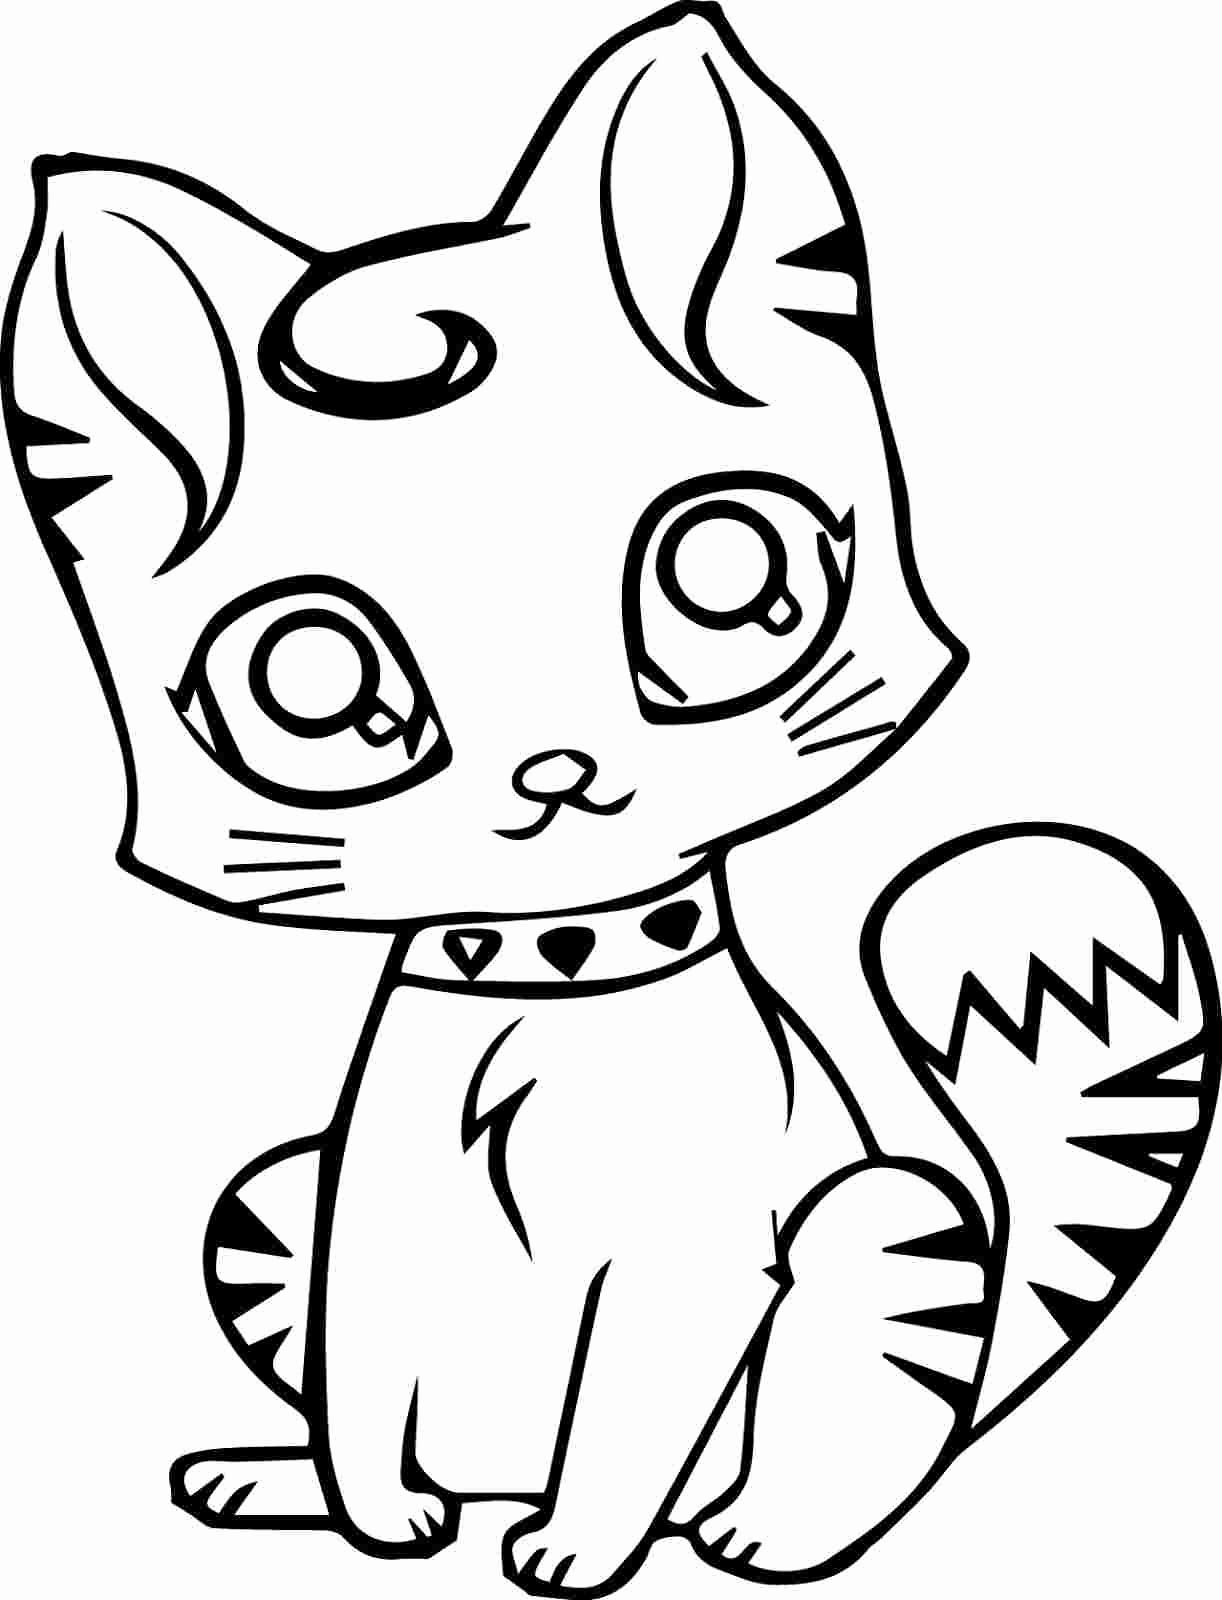 kawaii unicorn cat coloring pages amazing today kittens unicorns coloring pages caticorn pages coloring unicorn cat kawaii